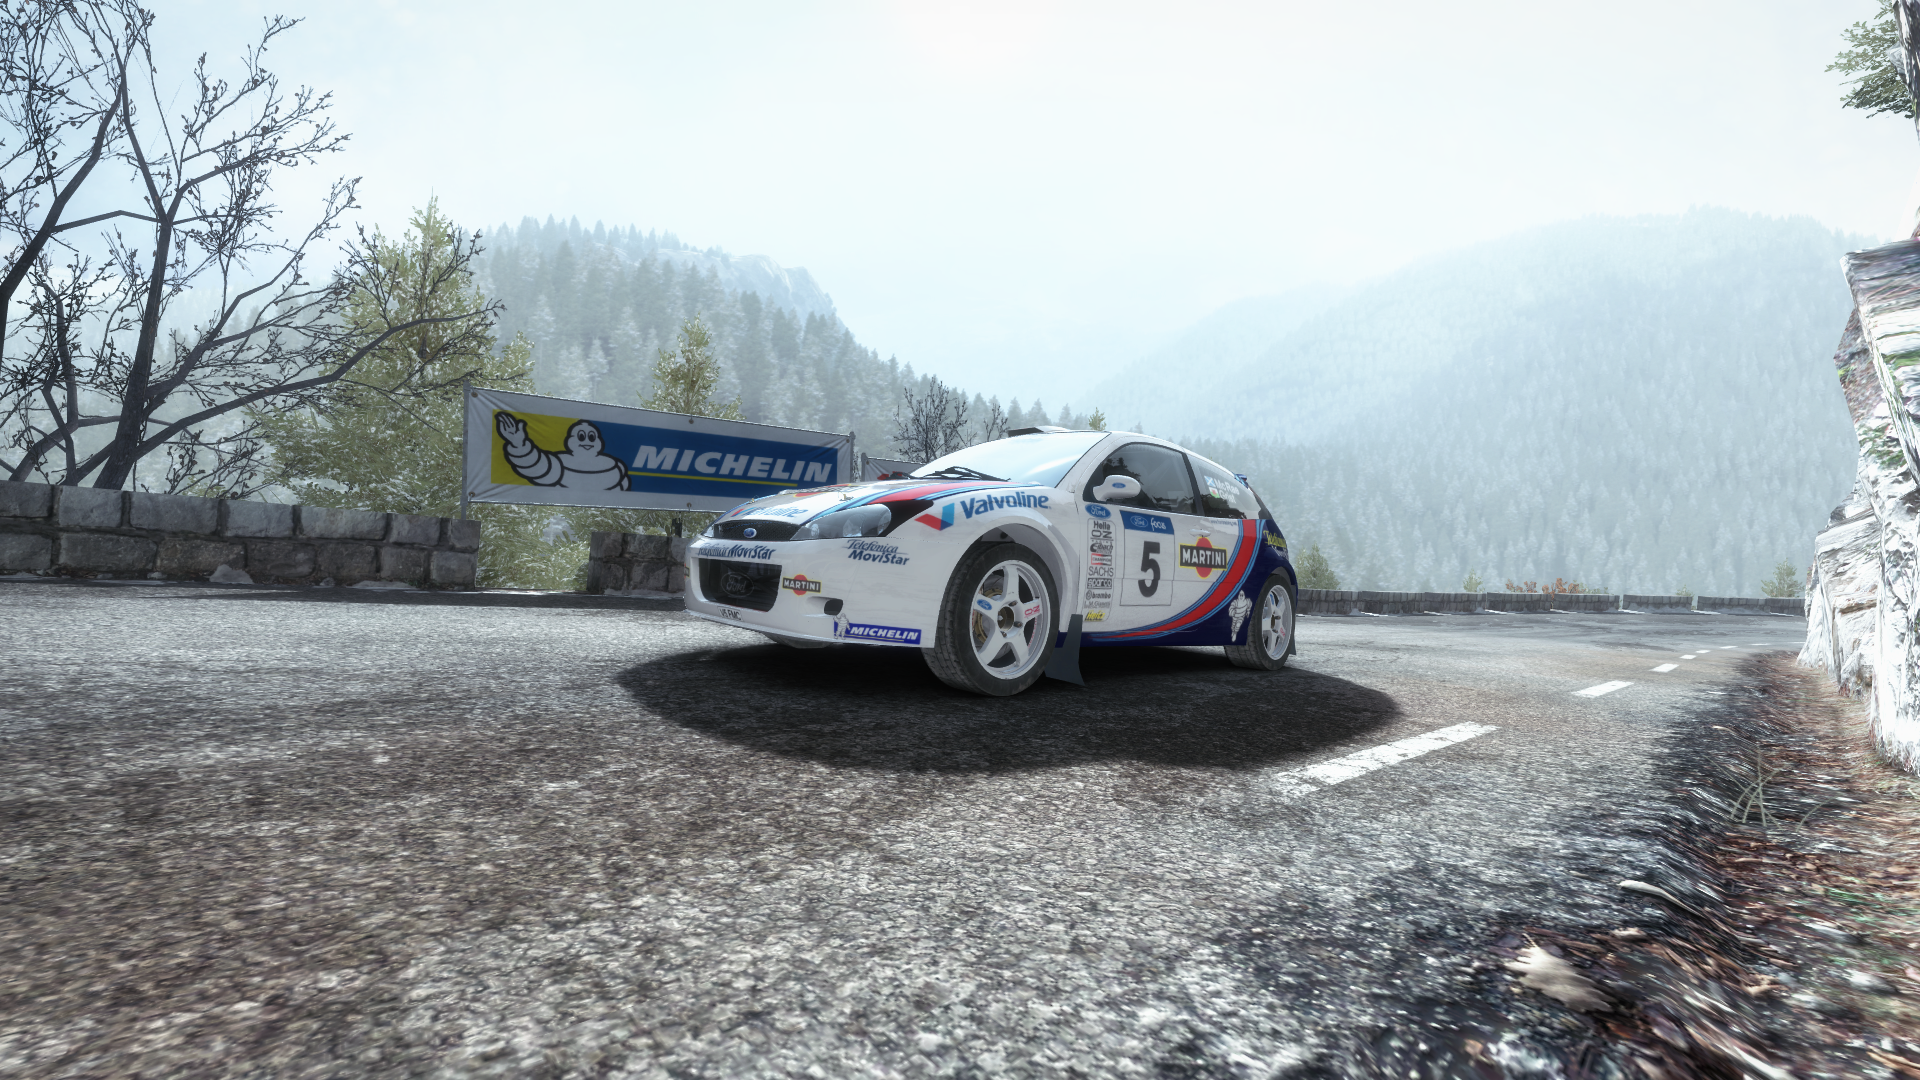 Ford focus 39 01 martini 2000 livery racedepartment for Ford s fish shack menu